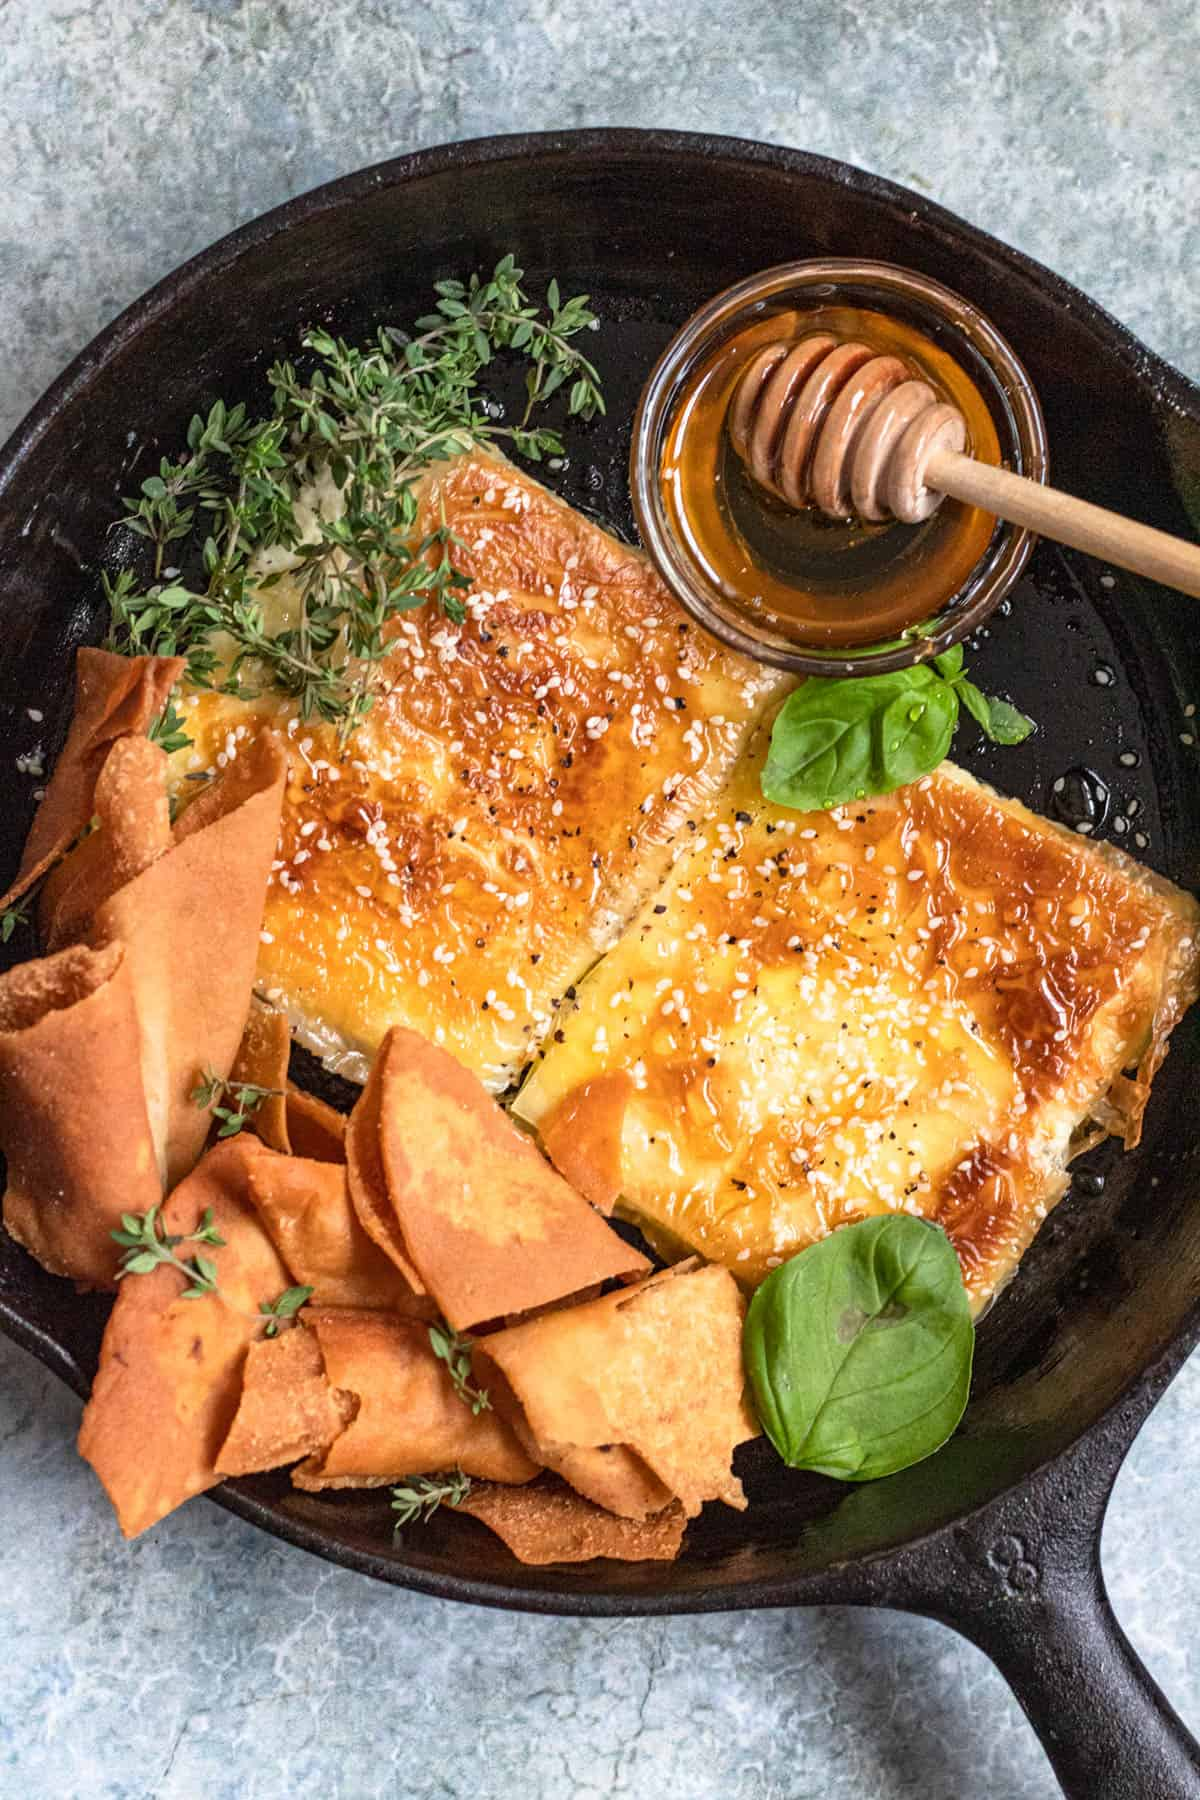 Fried feta in a cast iron skillet surrounded by honey, pita chips, and herbs